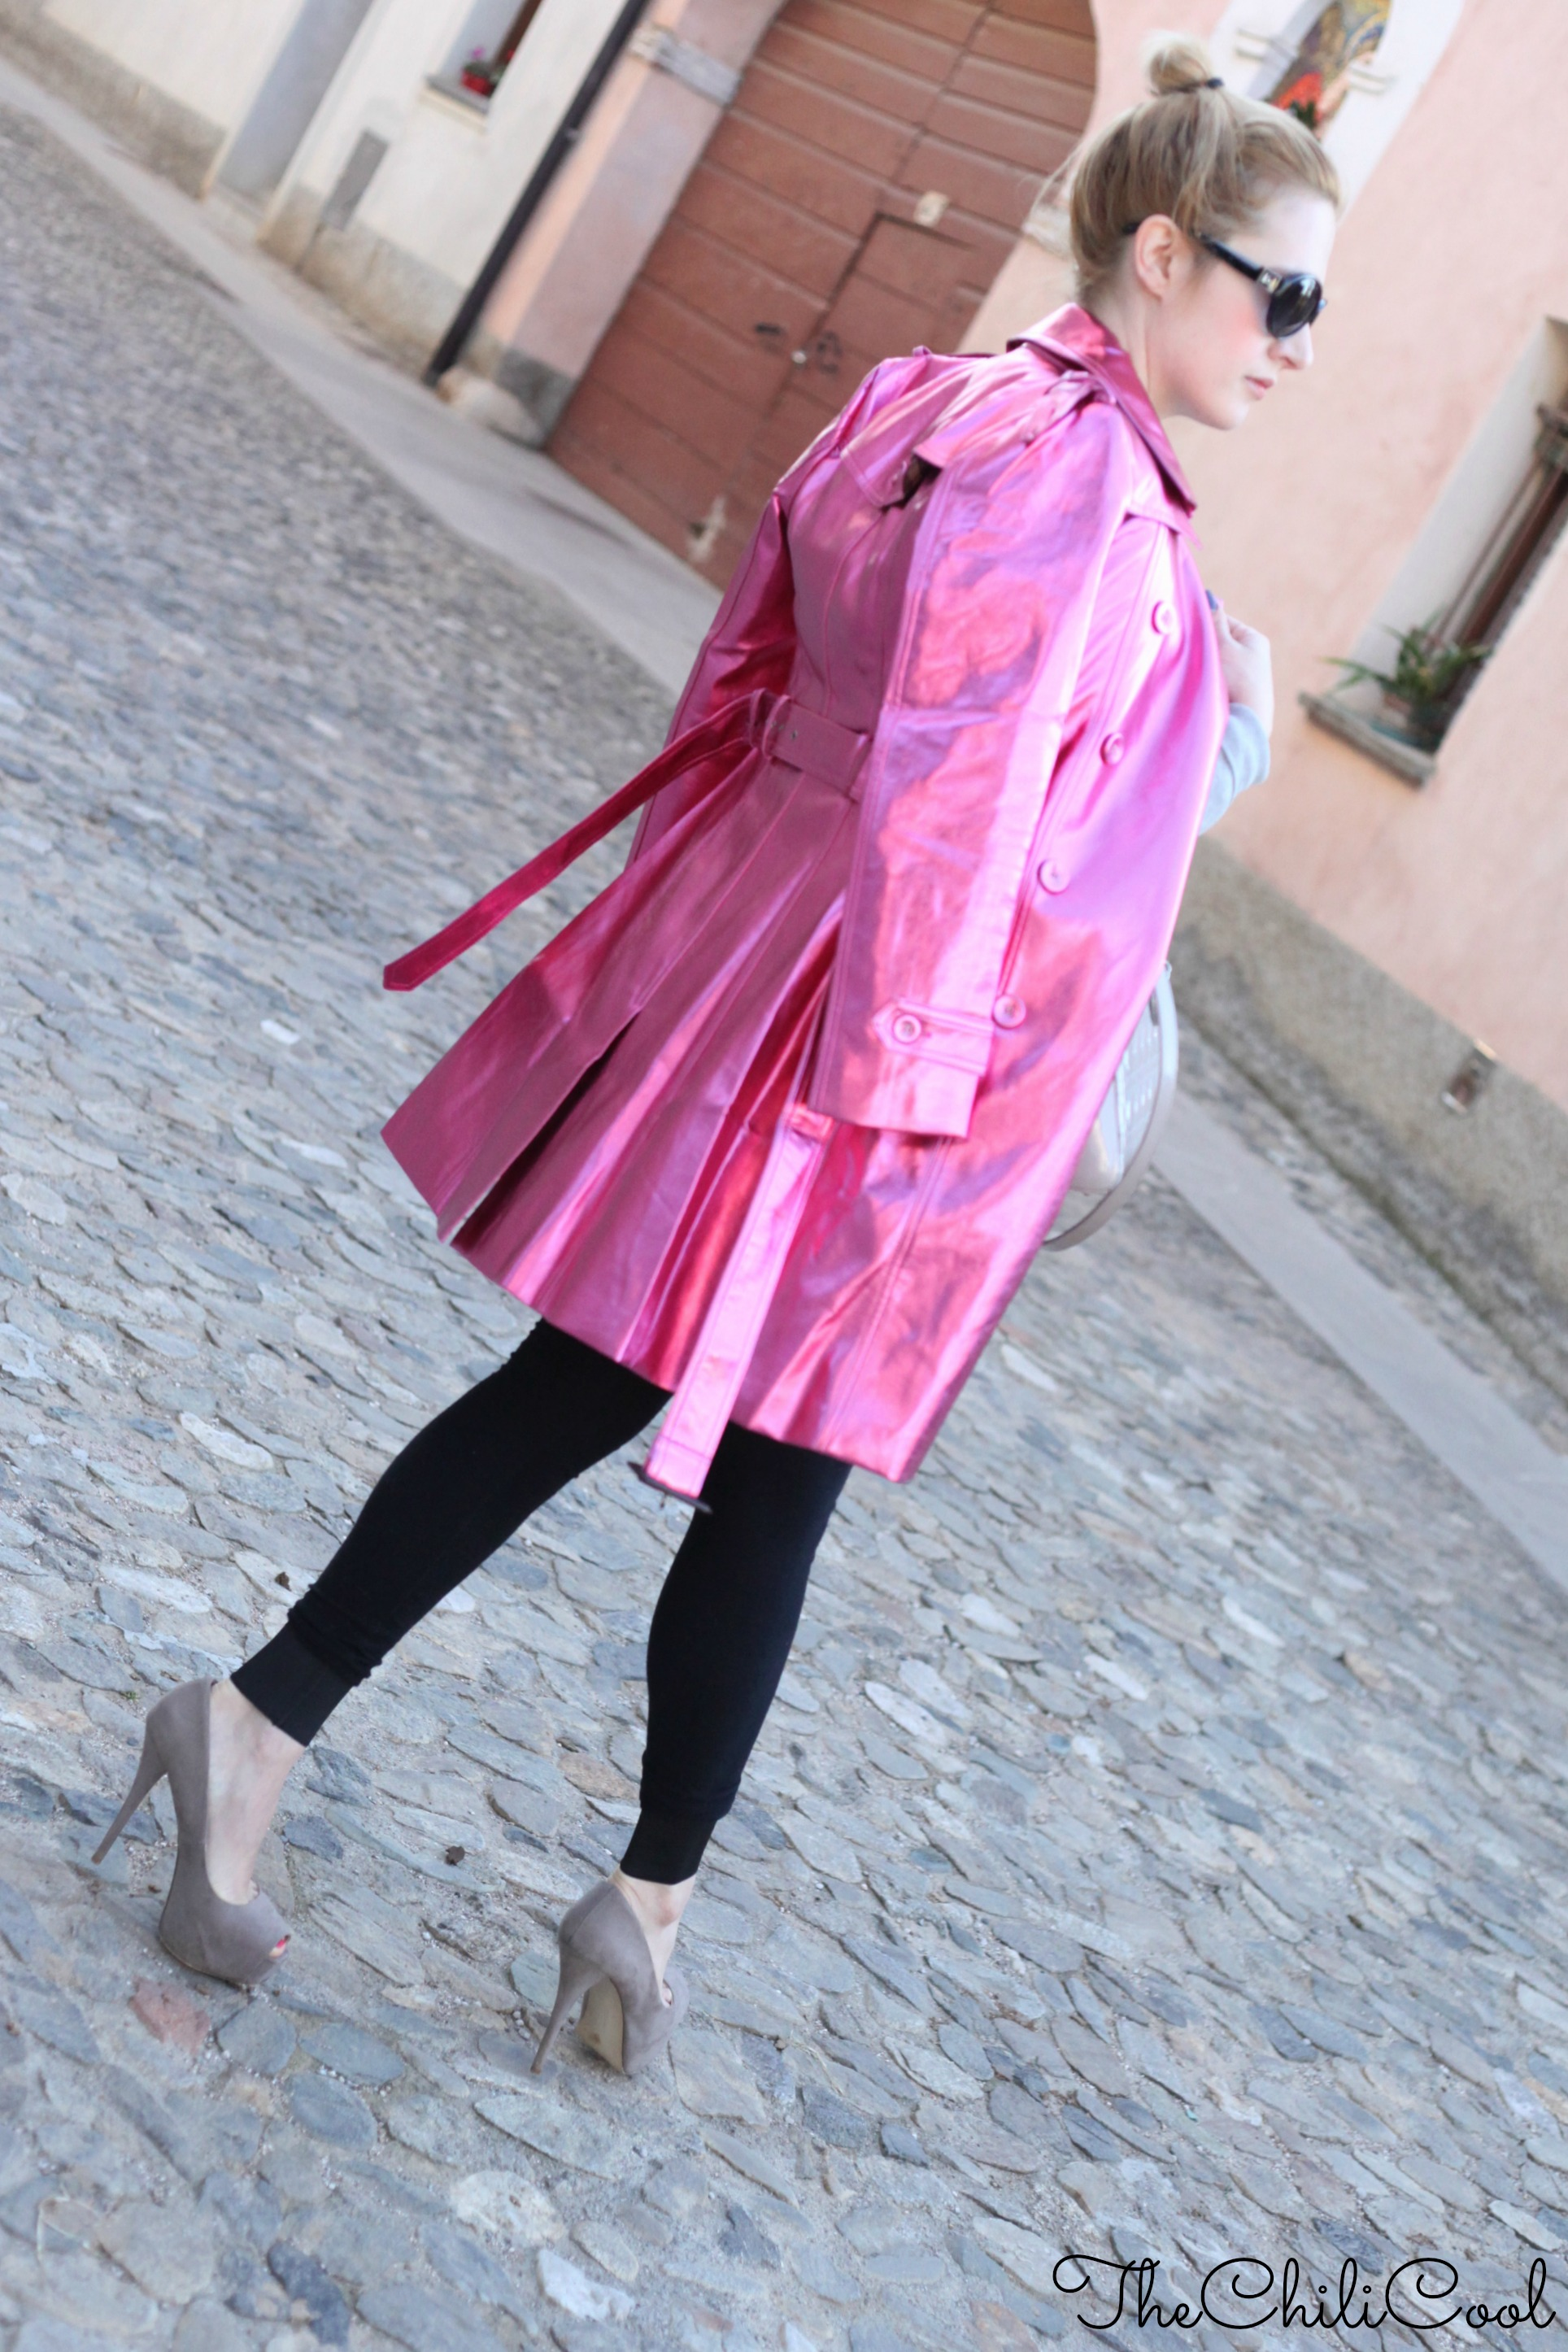 alessia milanese, thechilicool, fashion blog, fashion blogger,capsule collection camille over the rainbow for pimkie, lady dior bag